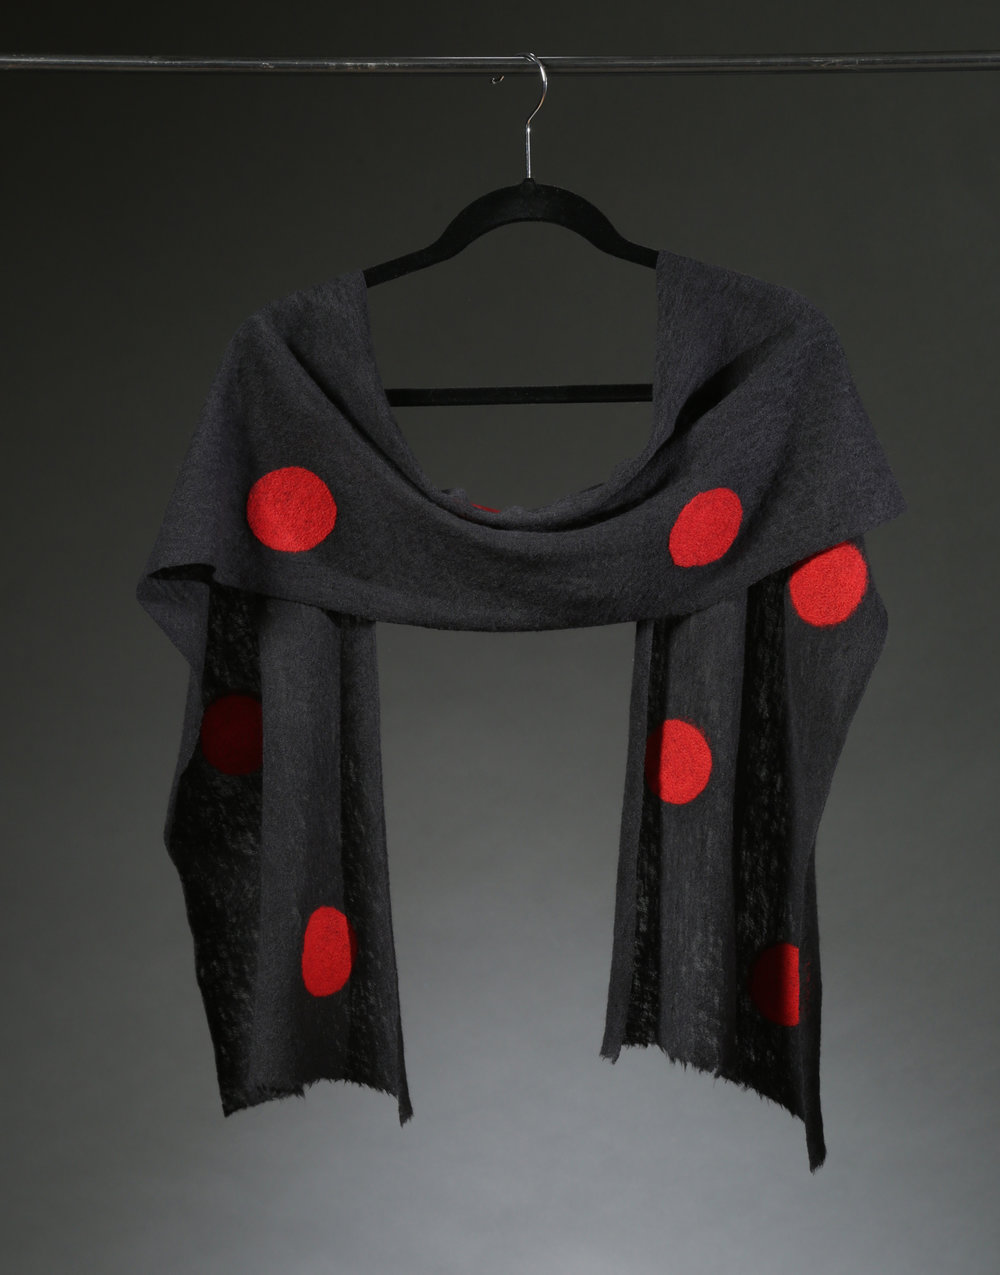 """Wool Knit Dot Scarf 6"", Textile ""66"" X 11"" $175"